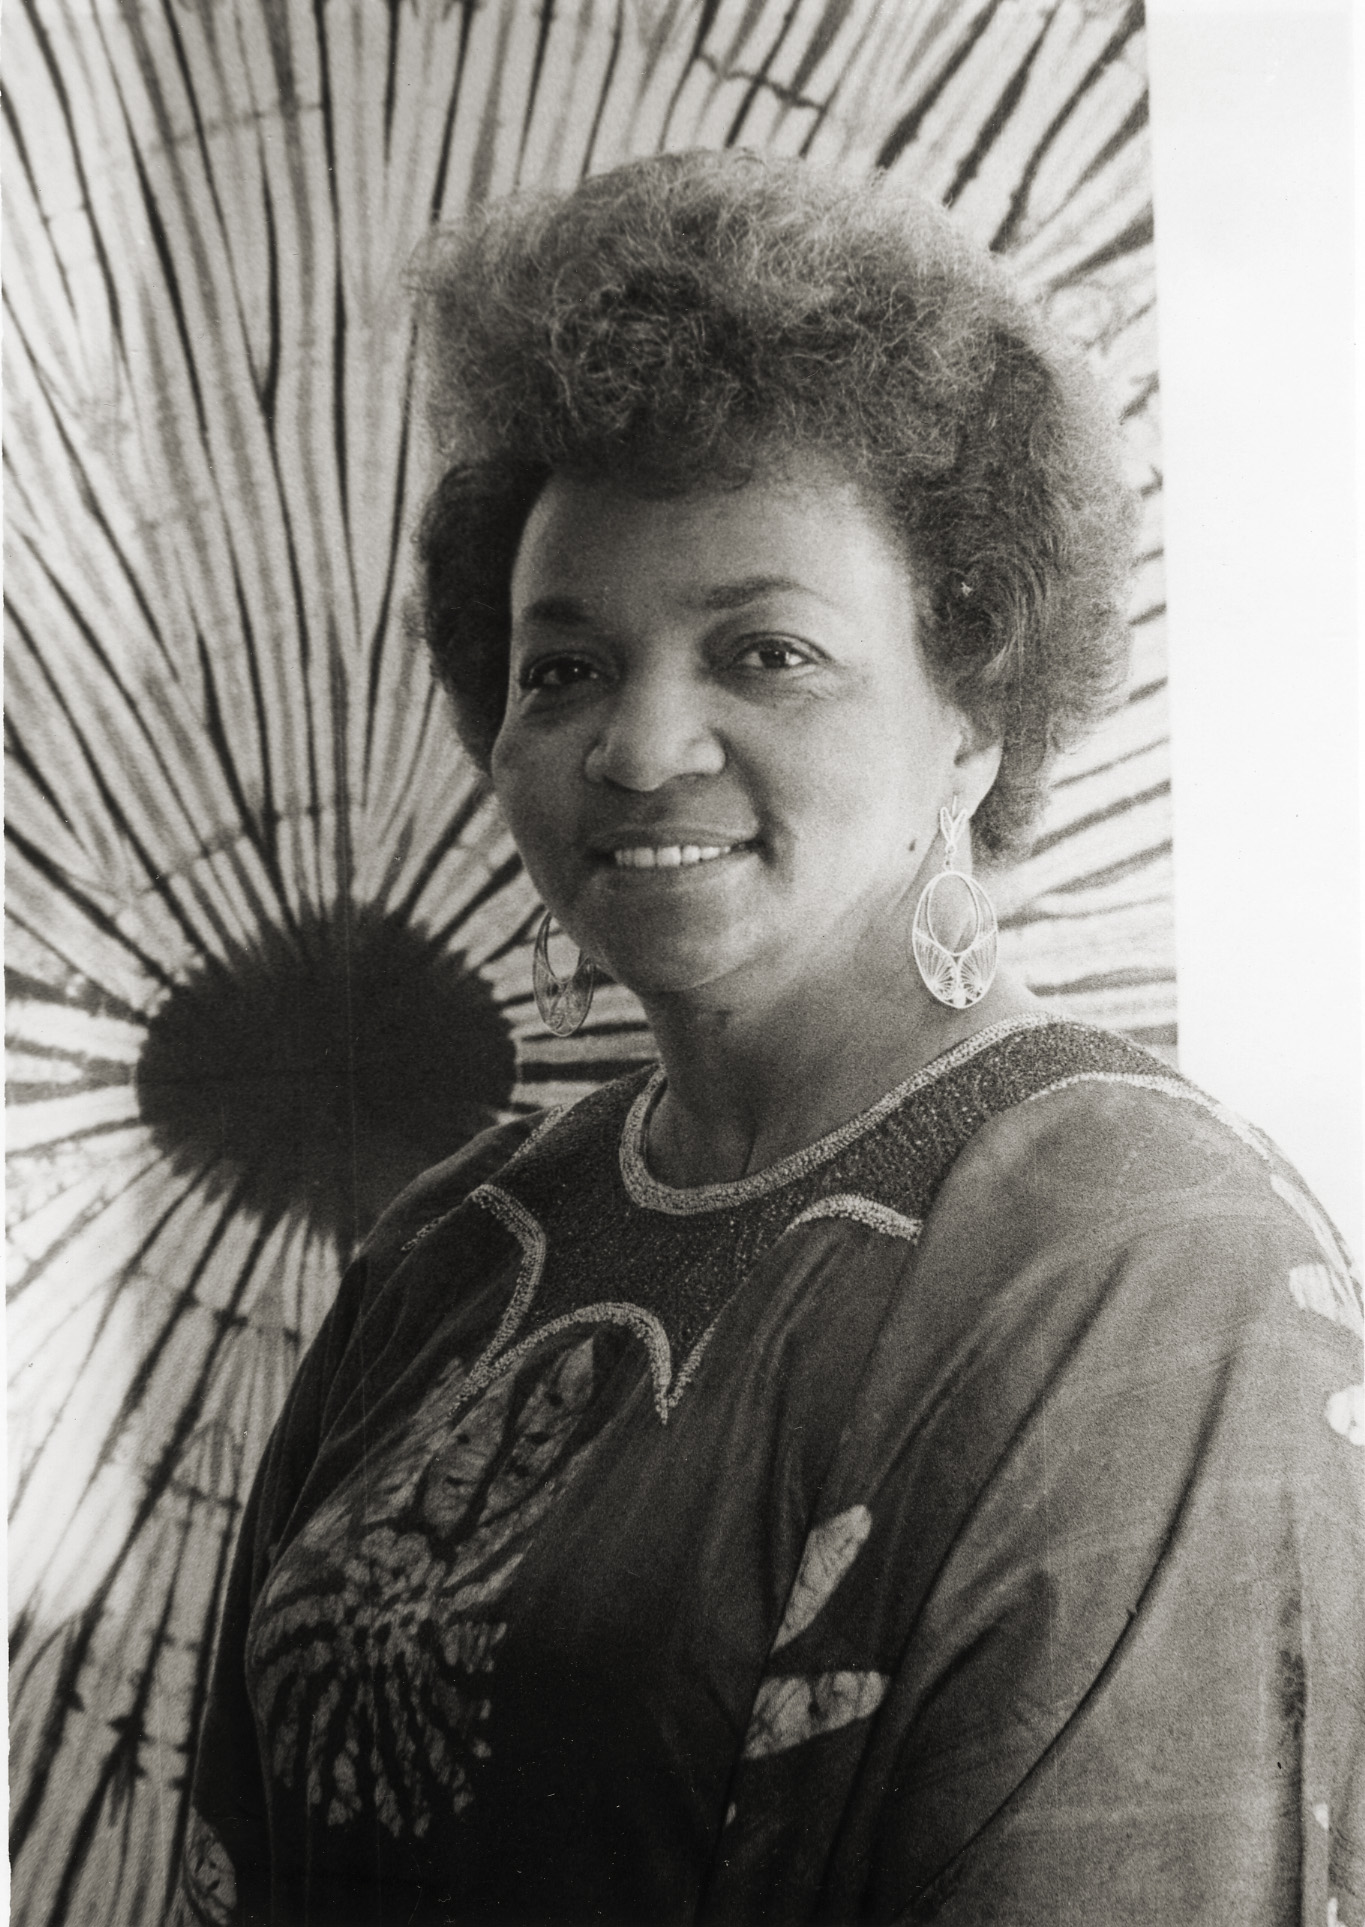 Image of Cynthia Shepard Perry, ca.1986